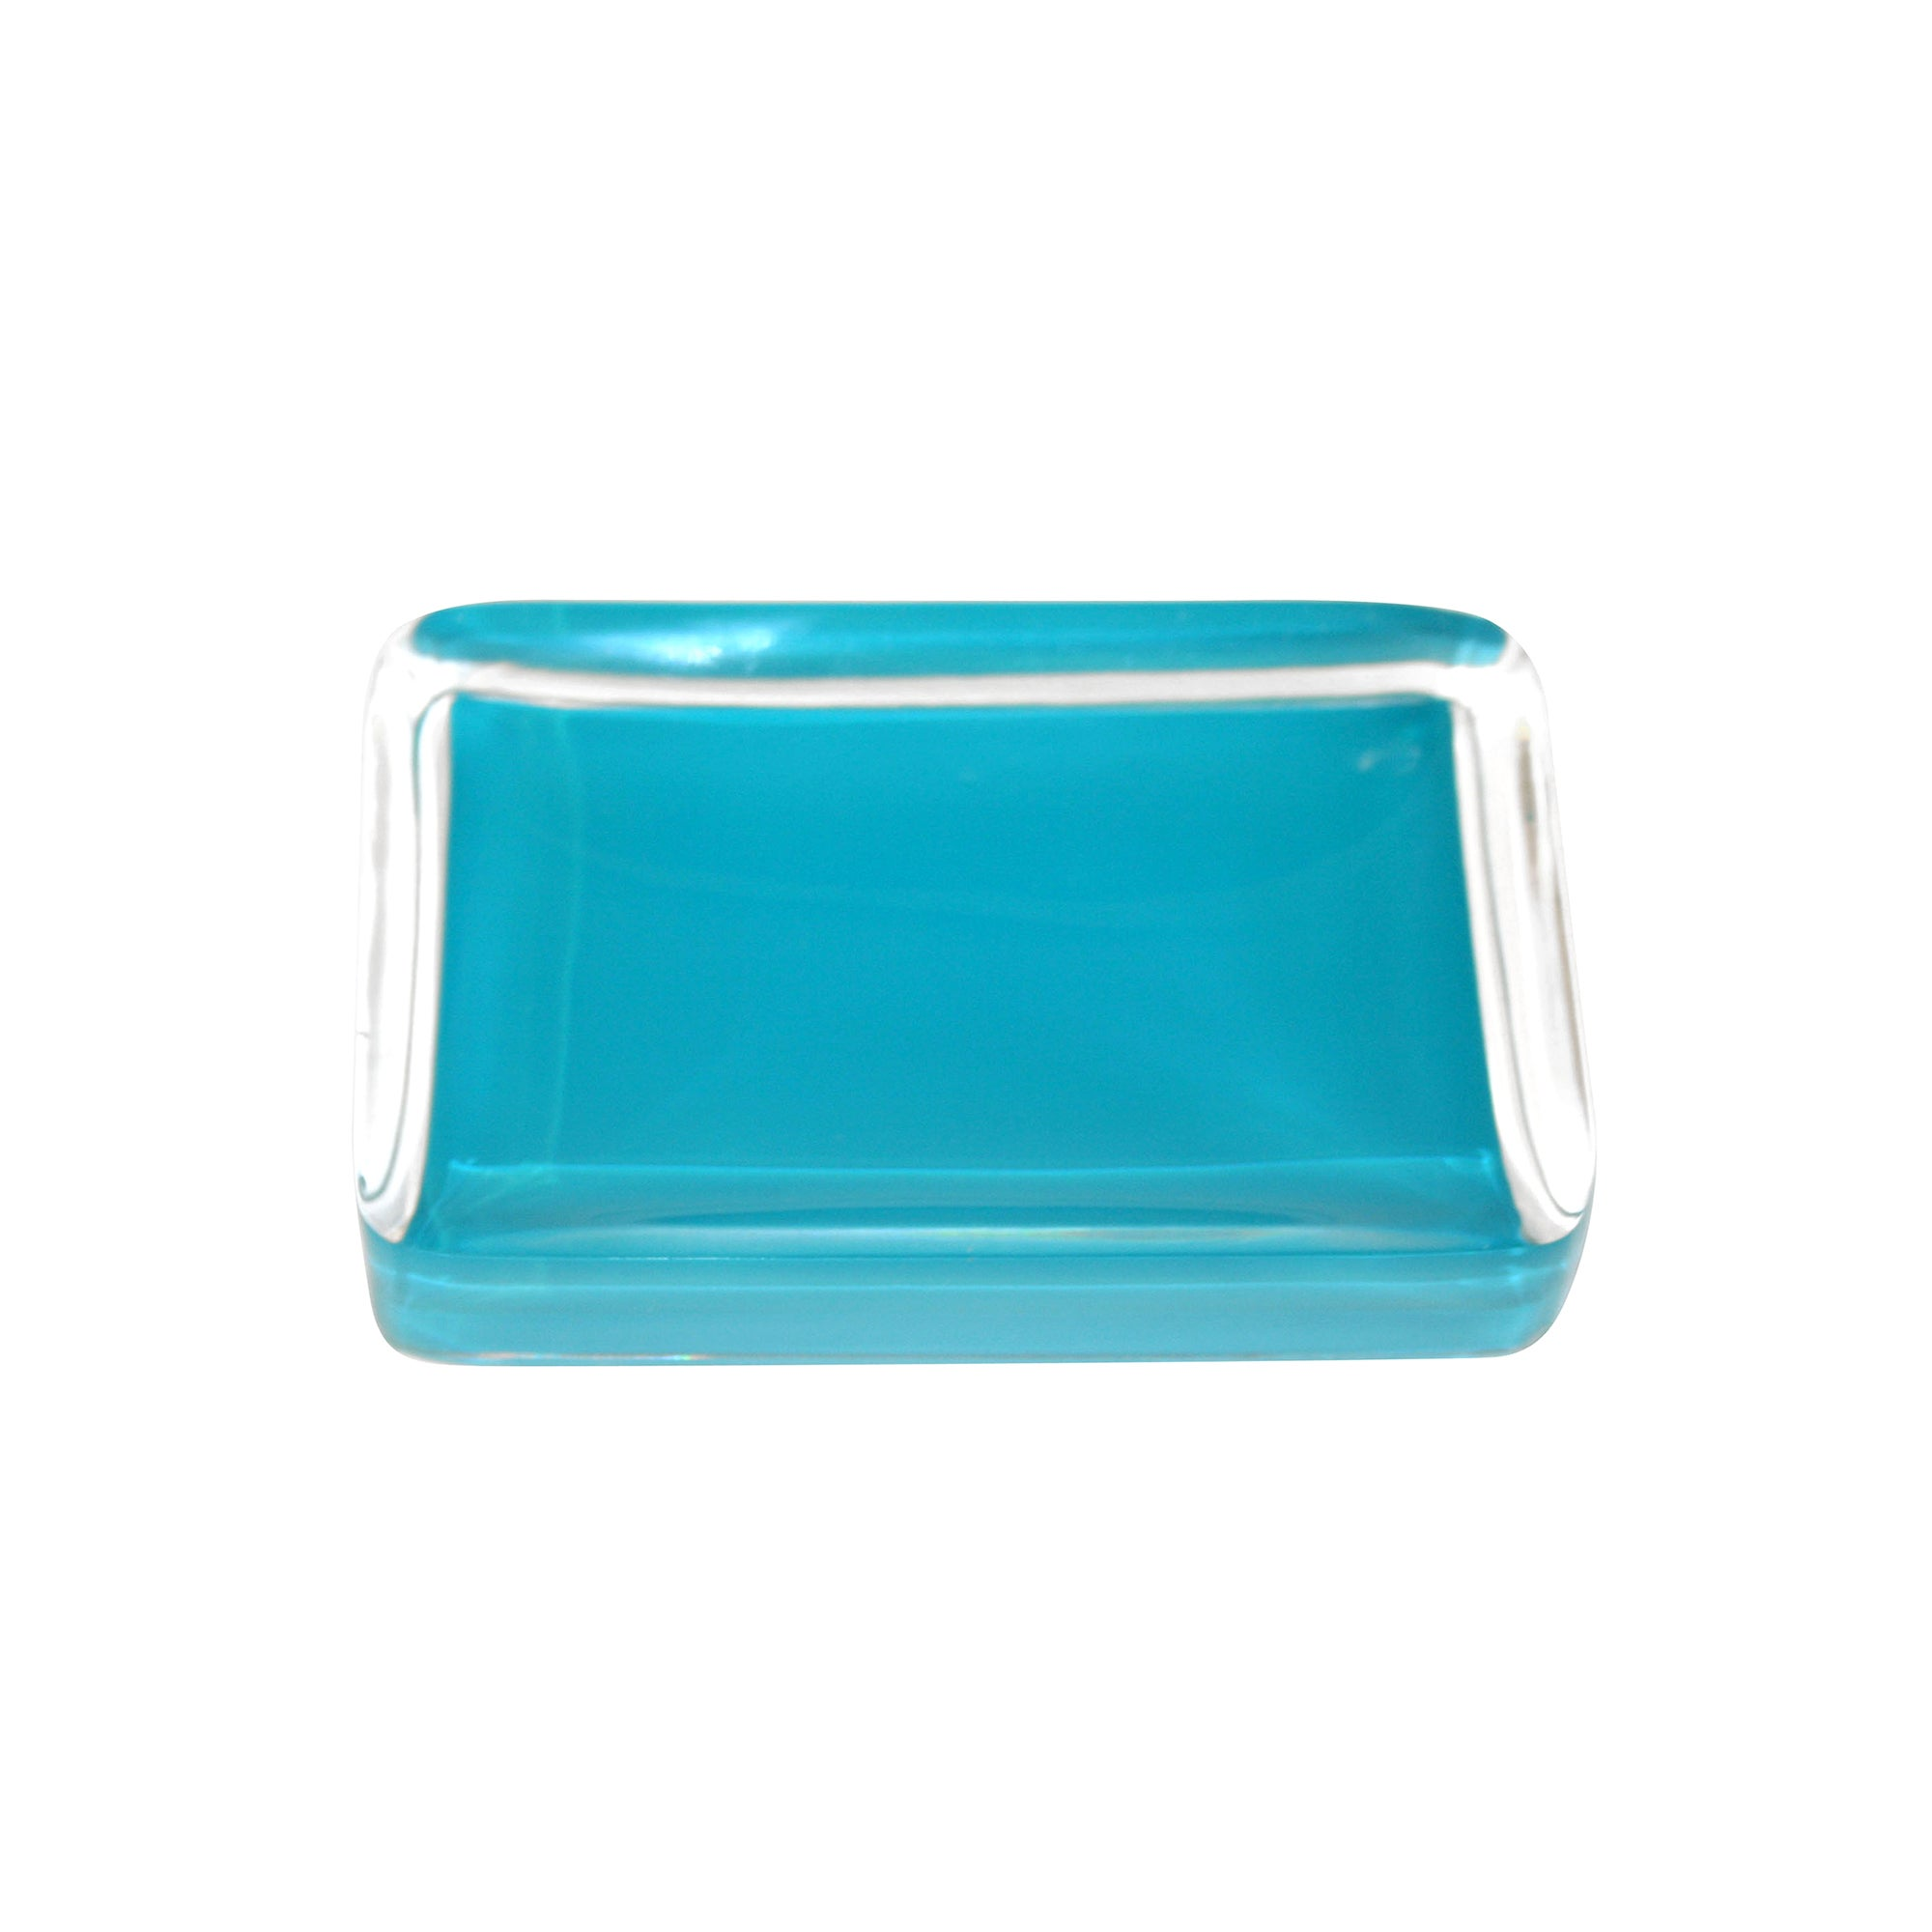 Teal Brights Collection Soap Dish